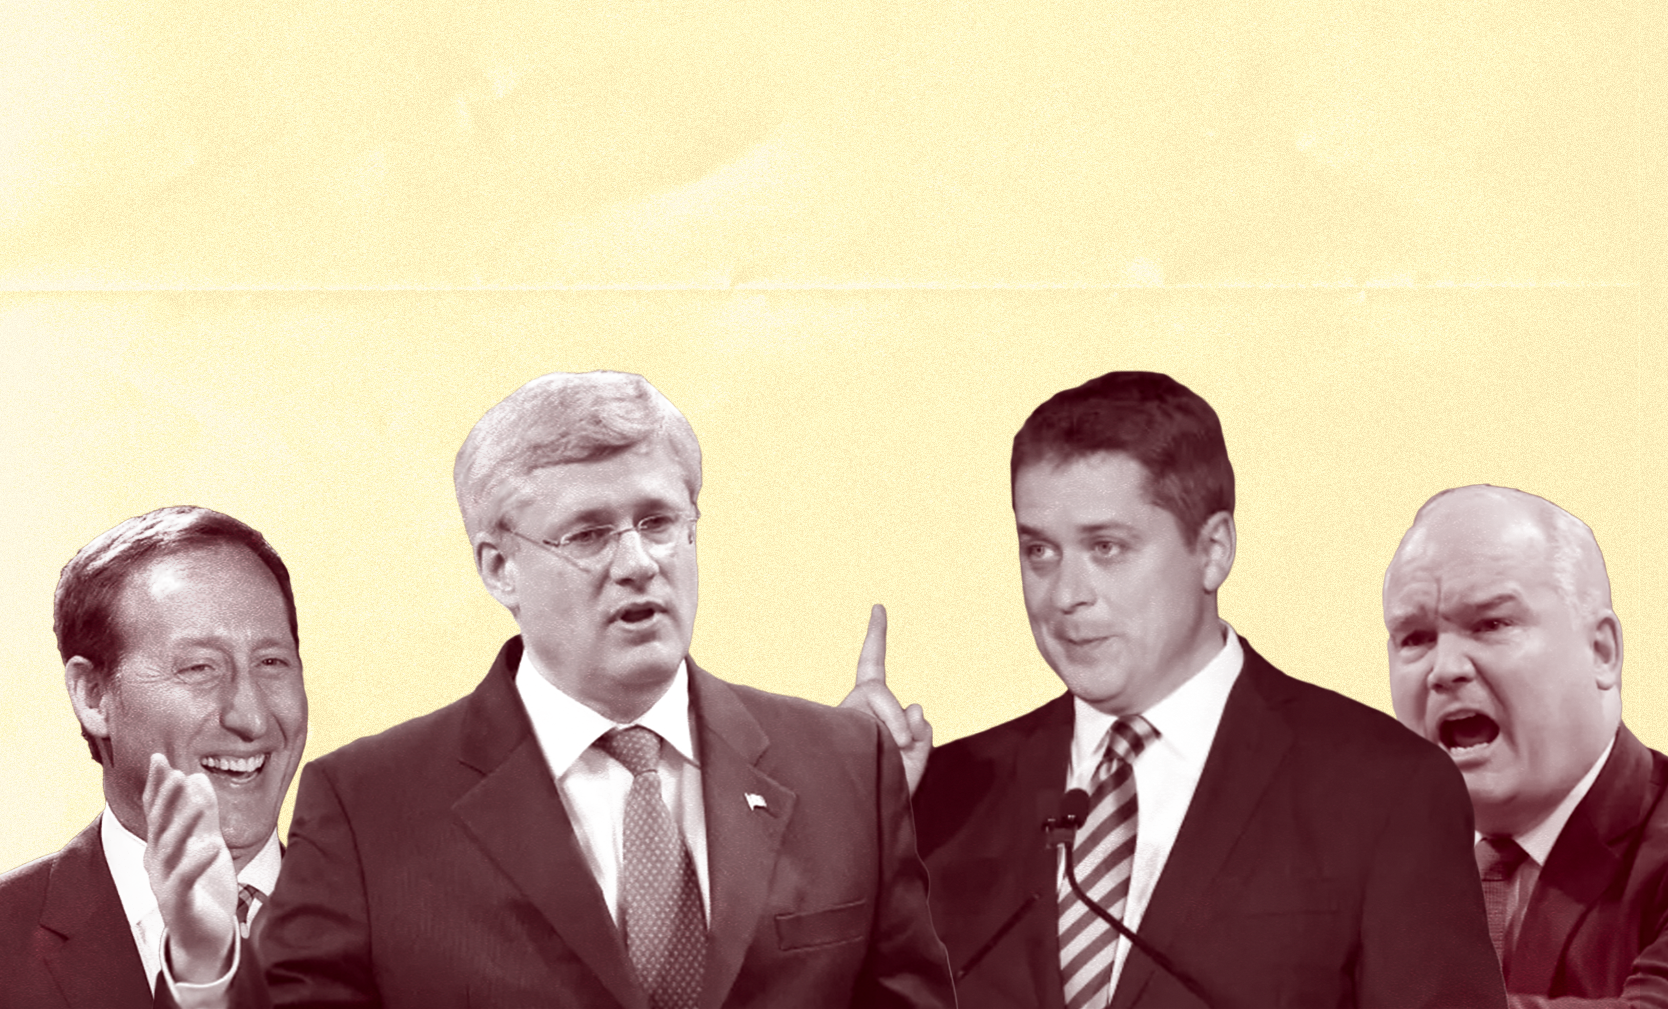 The future of the Conservative Party and how Trump's America strong-armed Canada